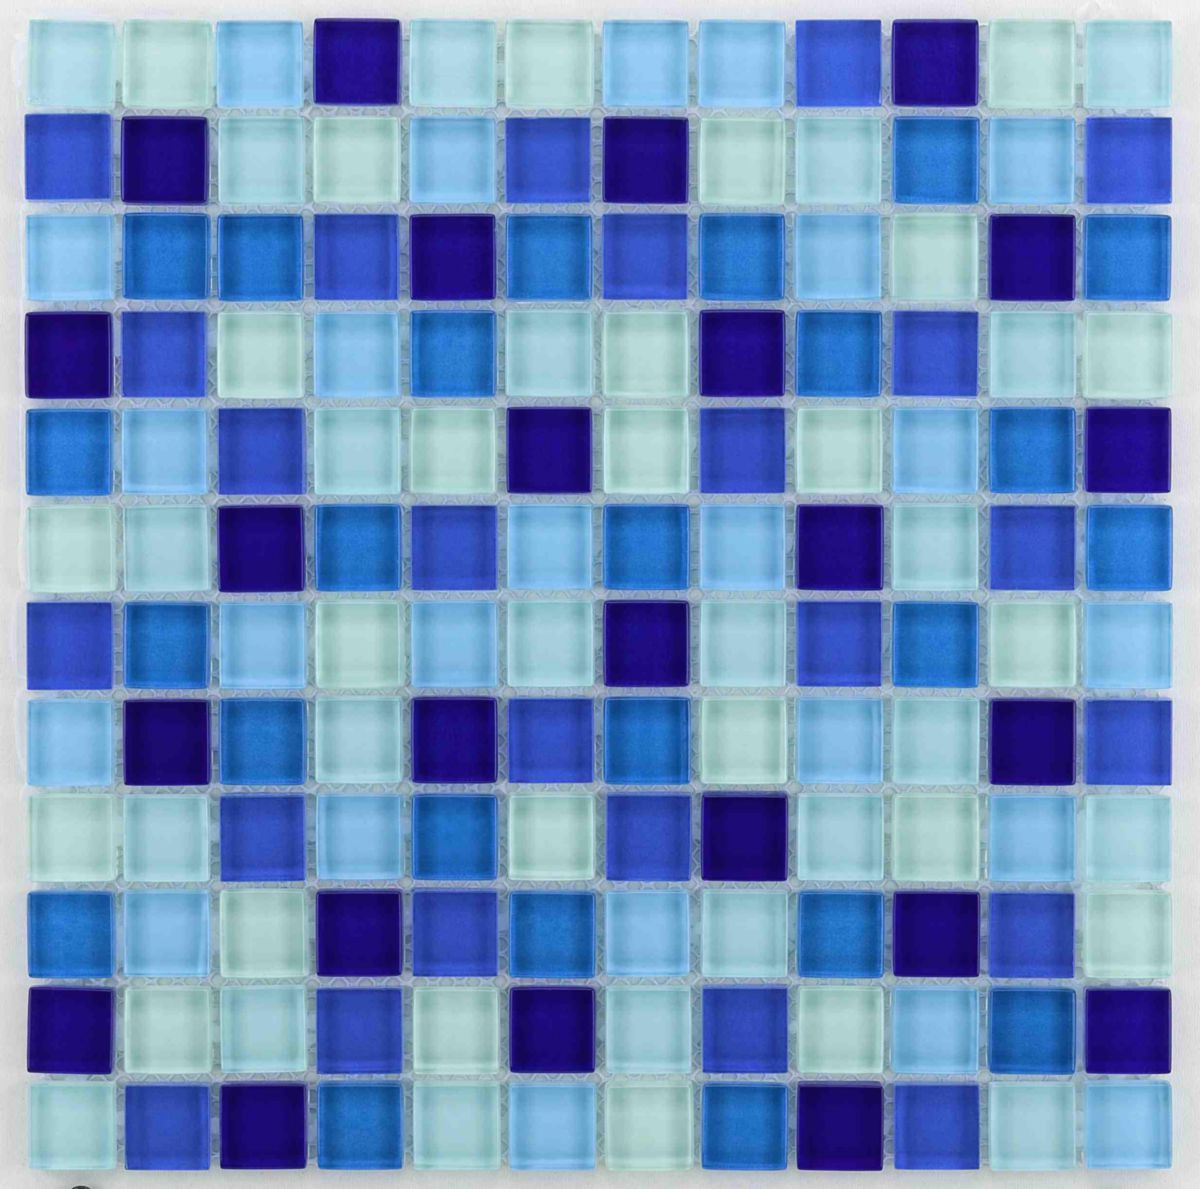 Carreau De Verre Carreau De Verre Bärwolf Water Blue Mix Mosaïque 2 3x2 3cm Décor 29 8x29 8cm Gl 2461